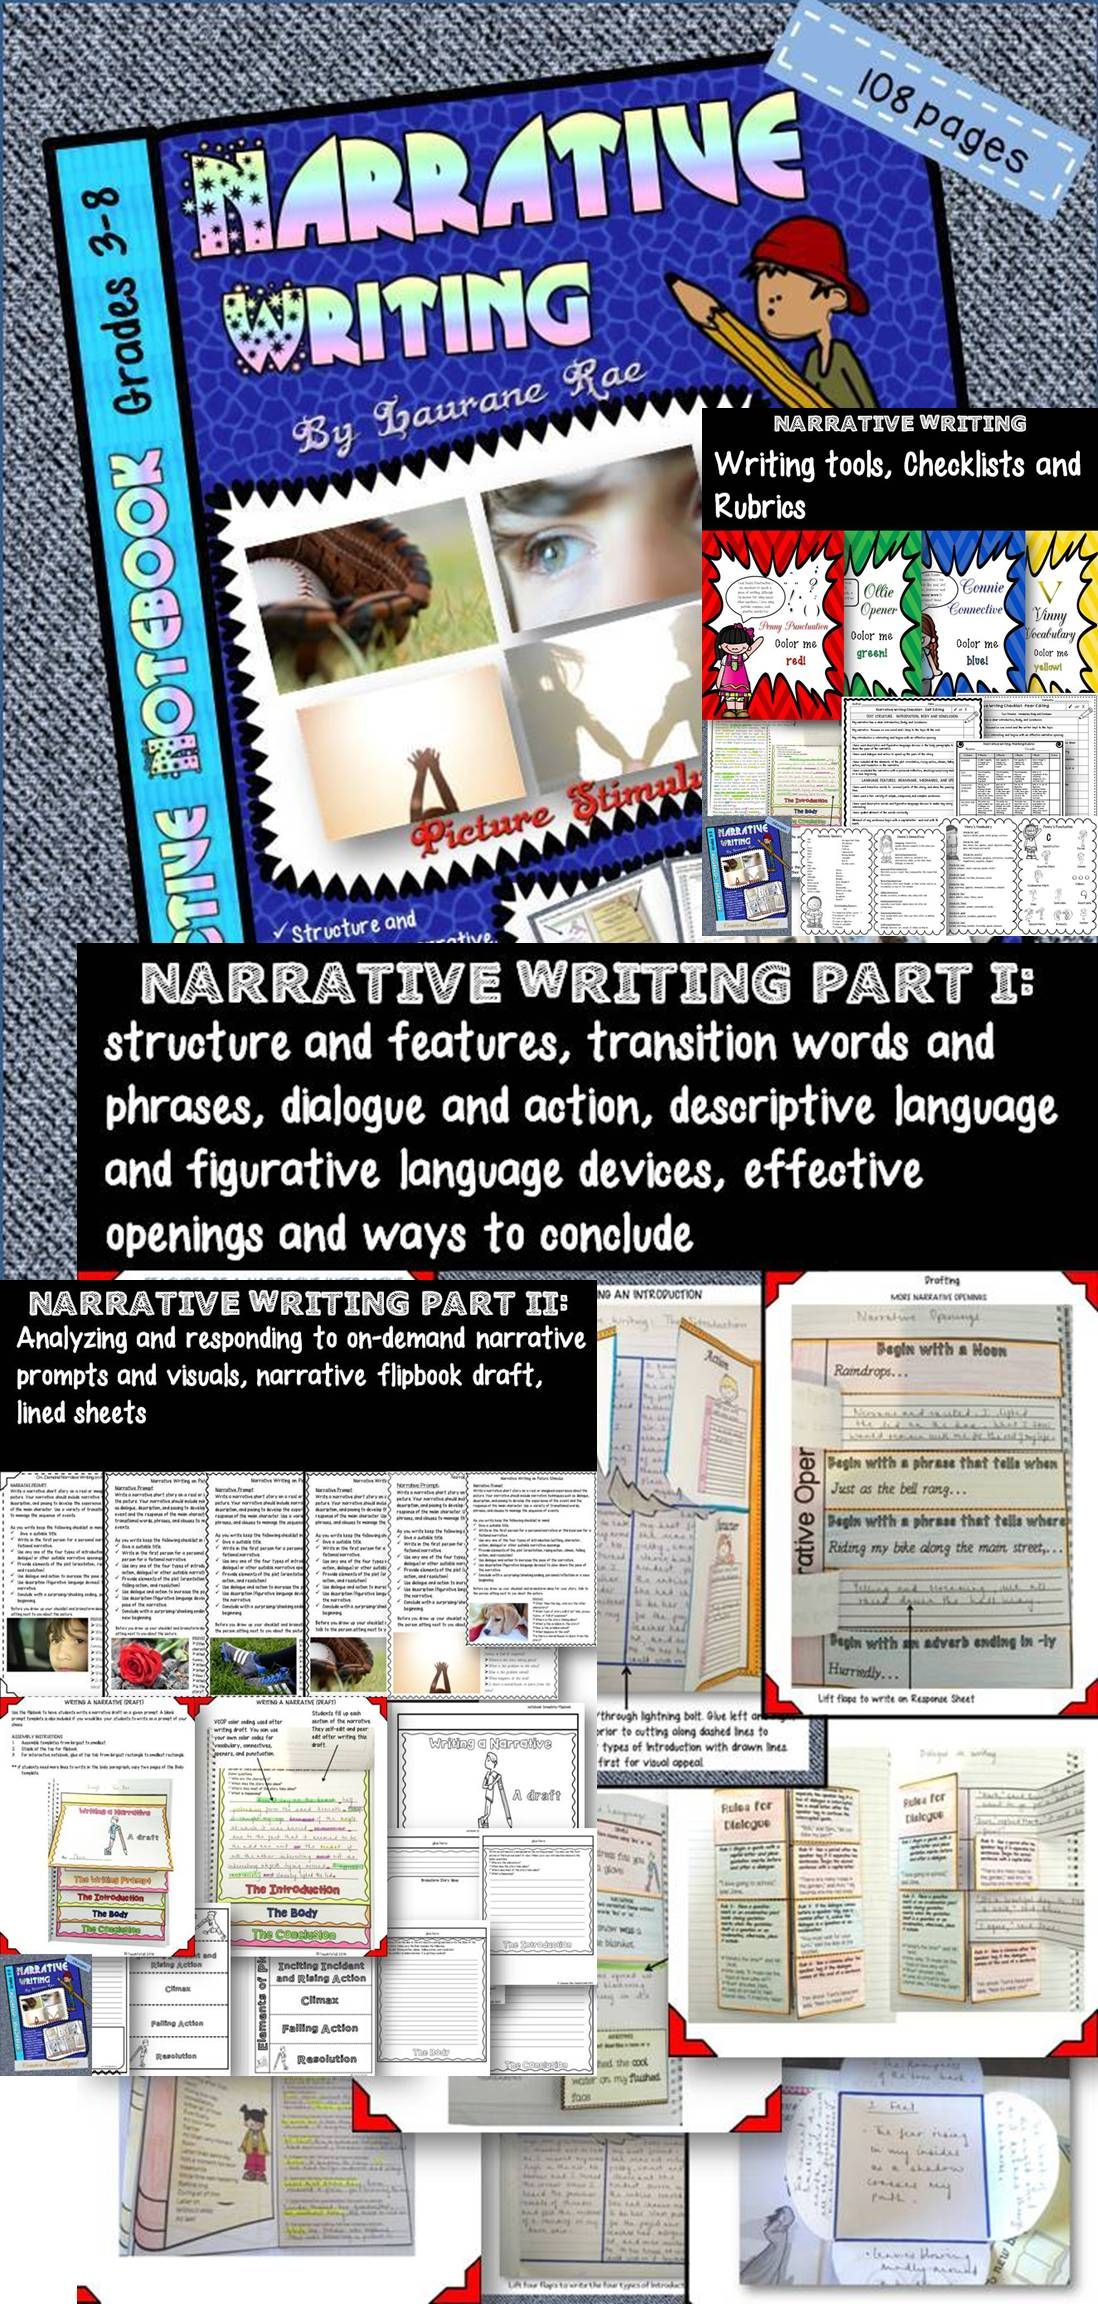 To weave a compelling story is indeed an Art in its own kind and with the structured and scaffolded lessons this unit offers, your students will be able to do just that. Mini lessons target use of transitions, description, figurative language, and dialogue to control pacing, in addition to effective ways to begin and conclude narratives. $